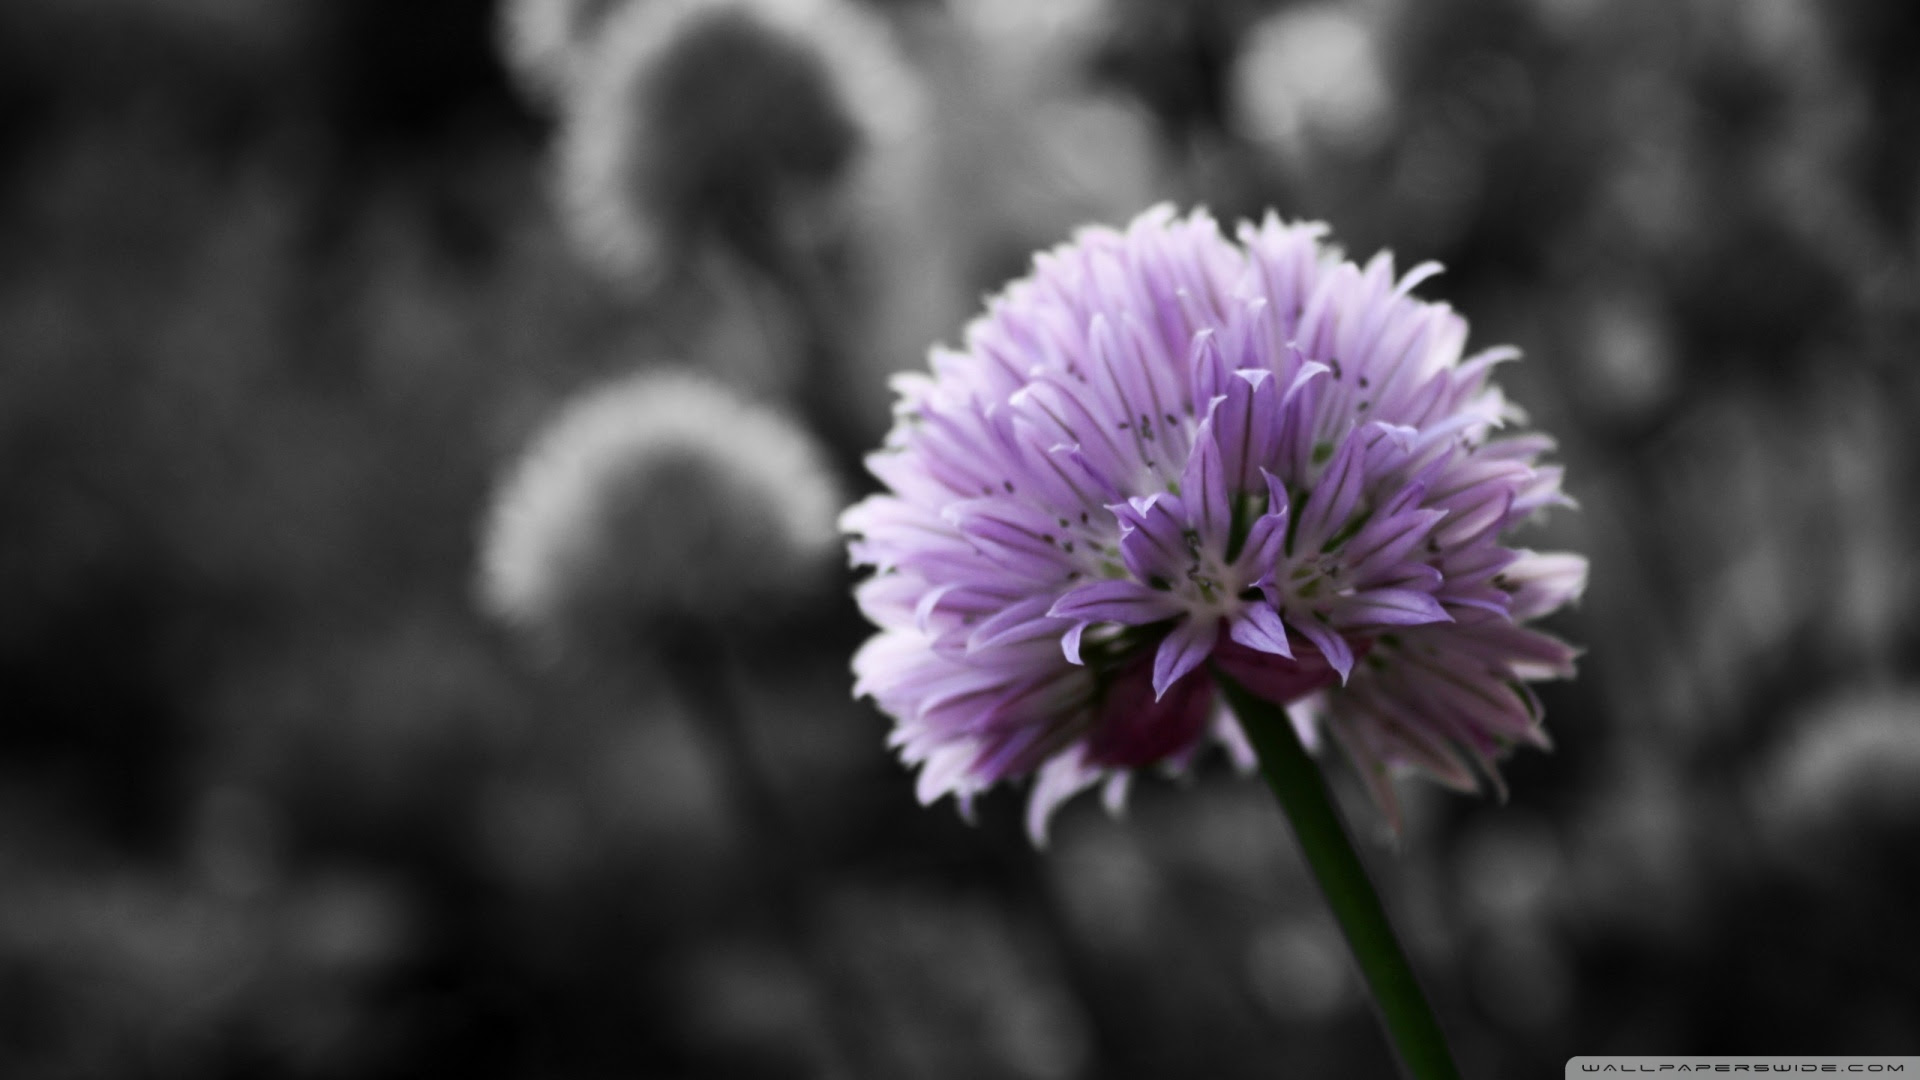 Black And White Flowers Wallpaper 1920x1080 51489